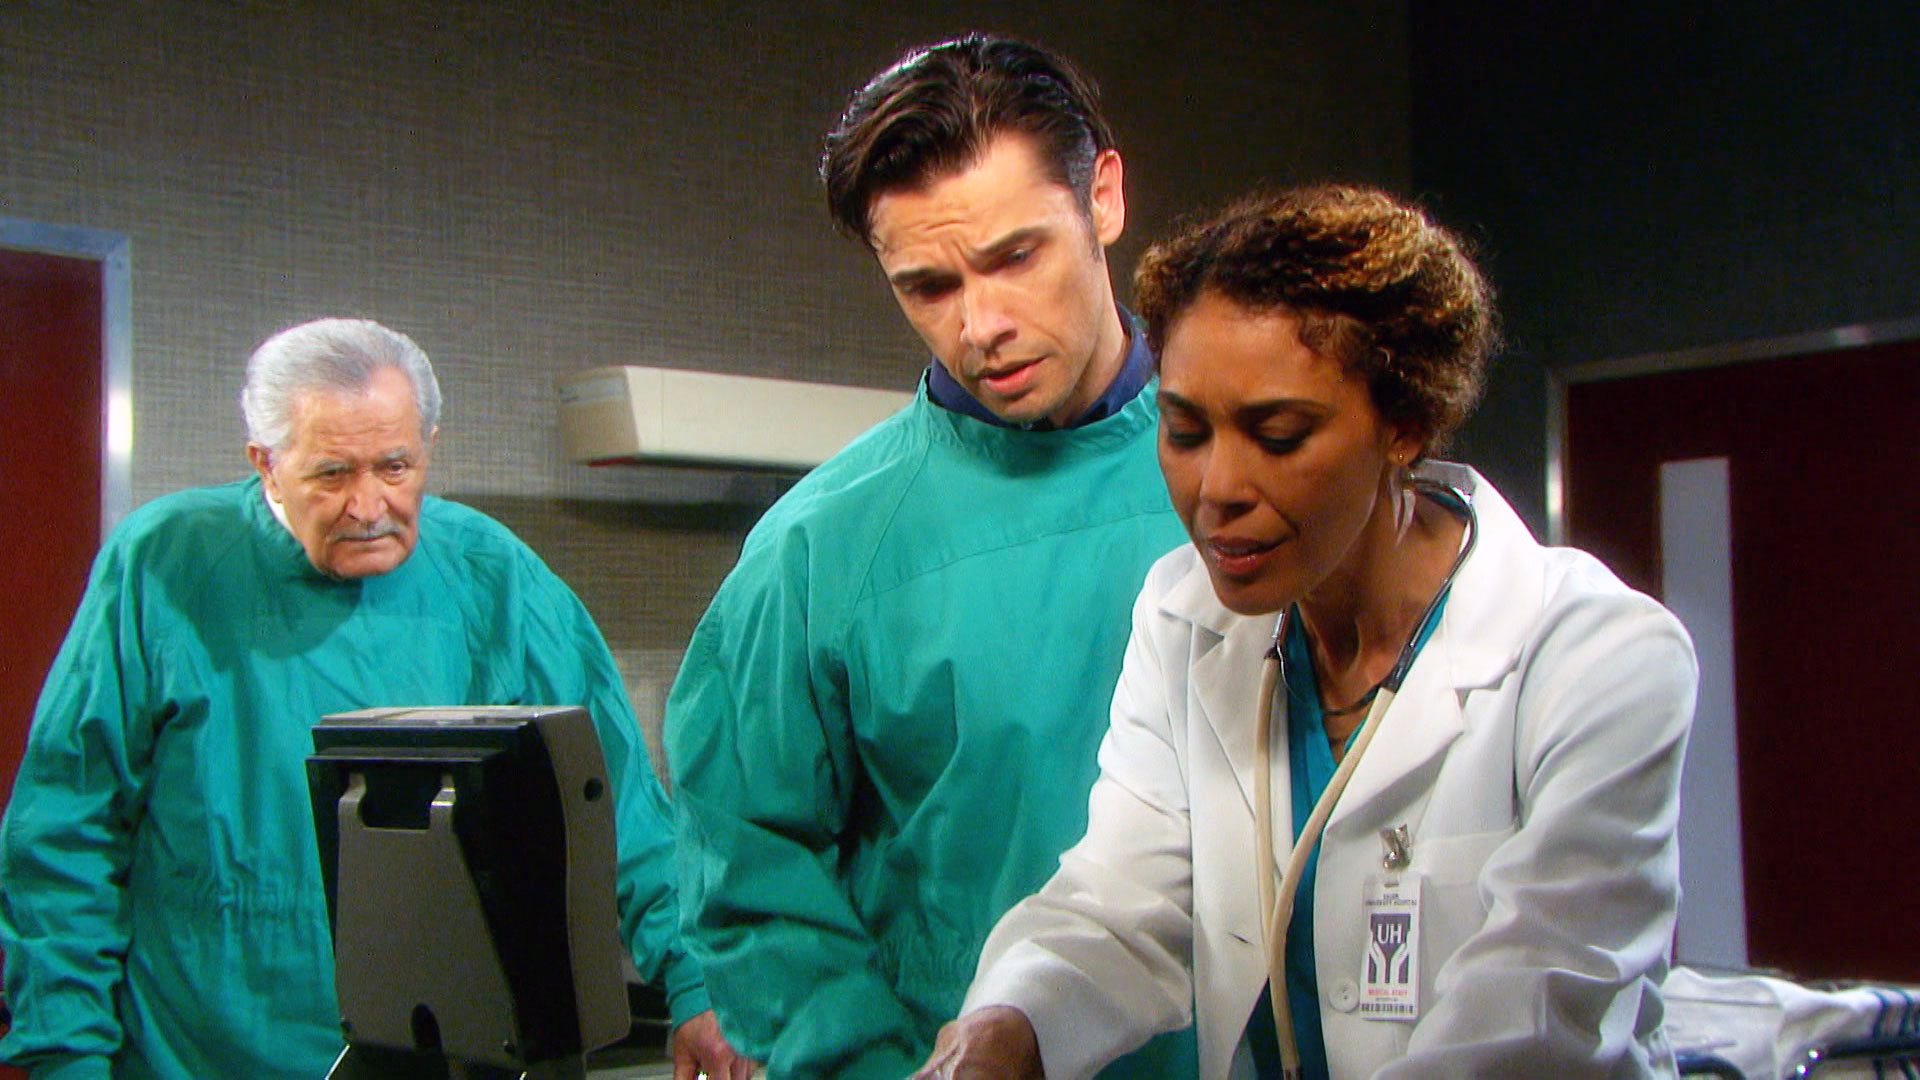 Days of Our Lives Season 55 Episode 86